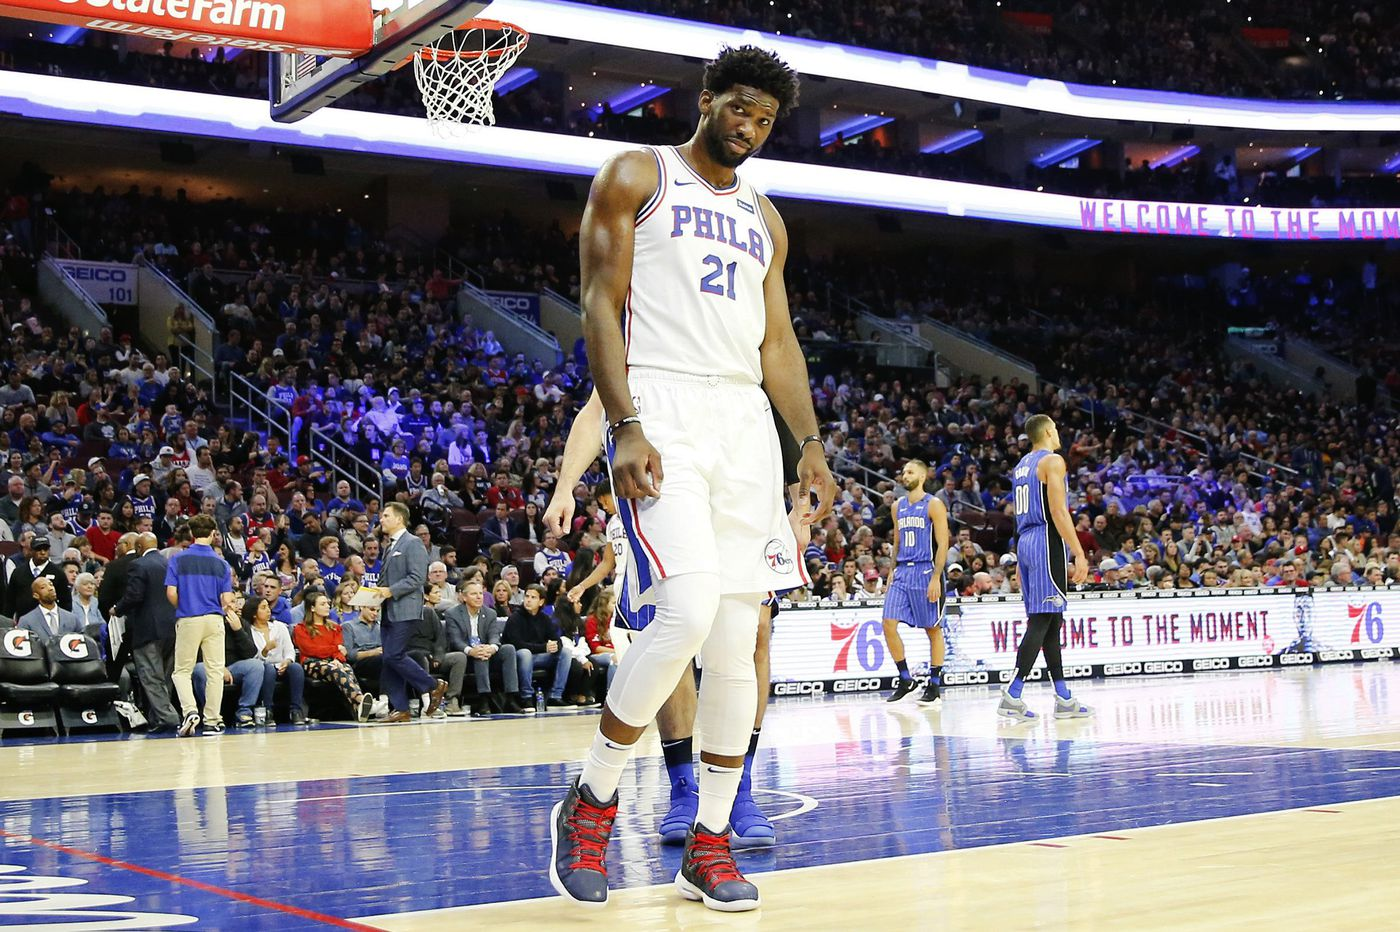 Joel Embiid rolls ankle at practice, questionable for Saturday's game vs. Hornets